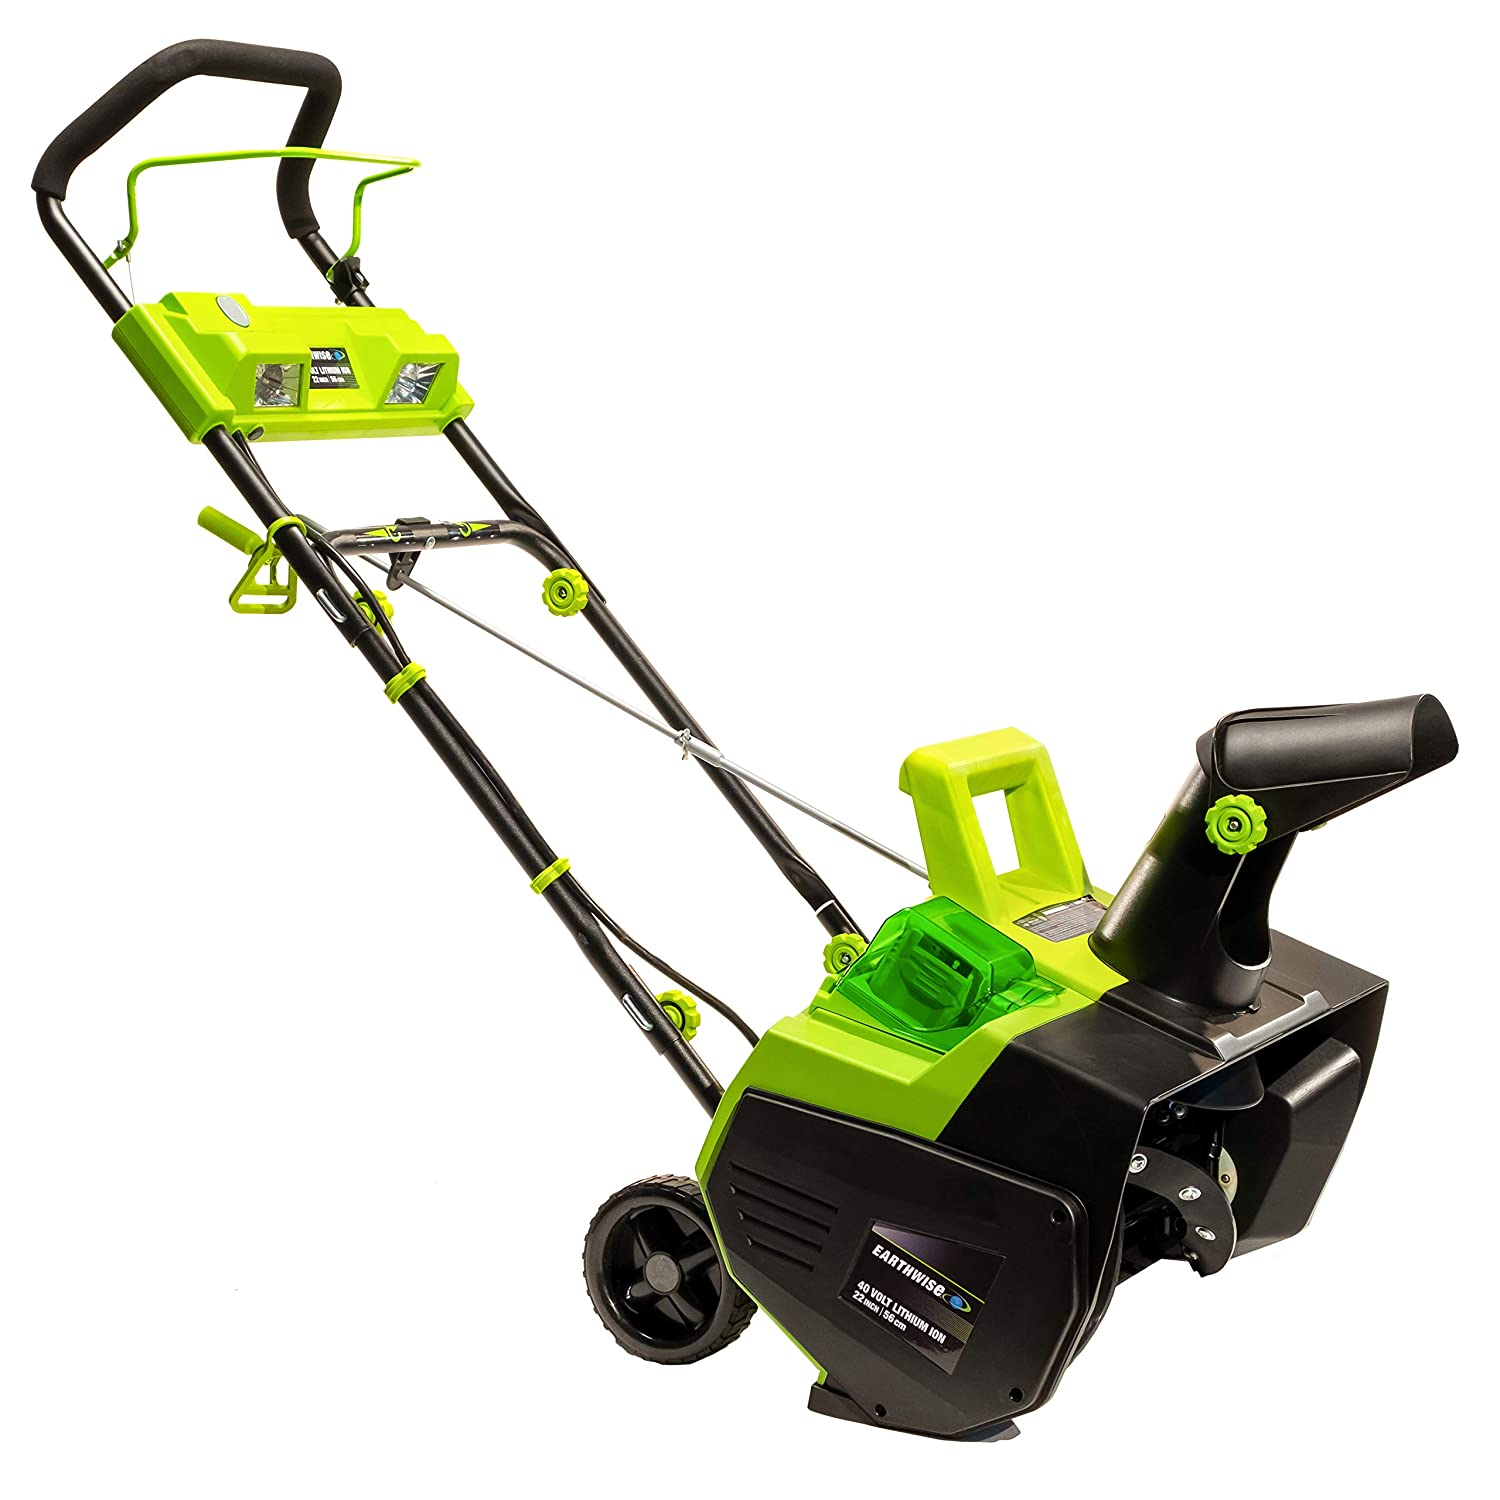 Earthwise SN74022 22-Inch 40-Volt Cordless Snow